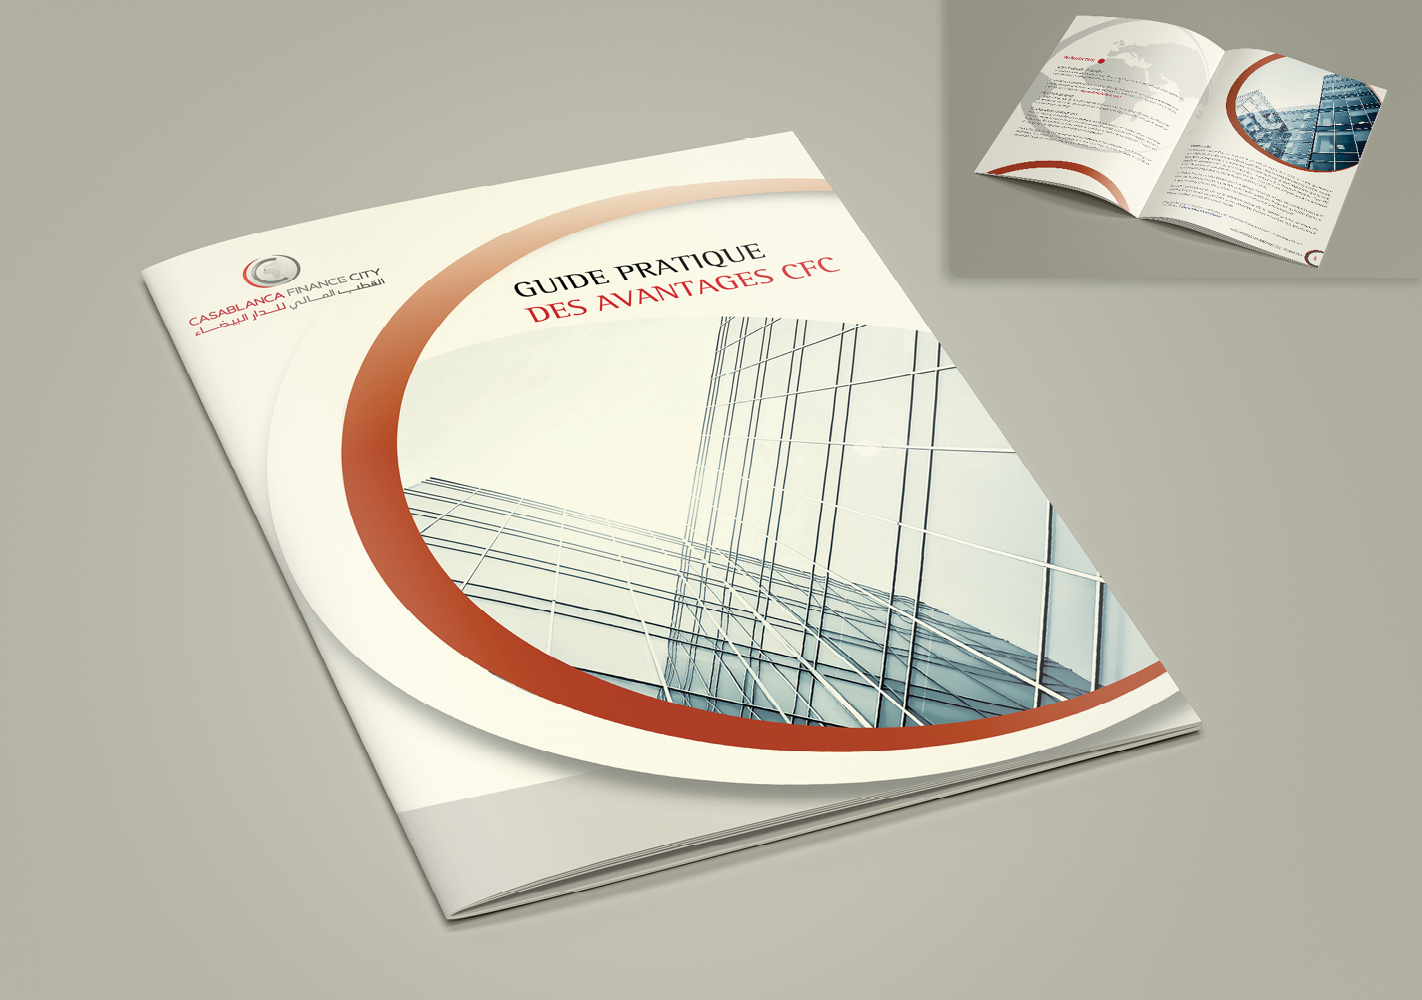 #Brochure institutionnelle : Adaptation, exécution et impression #Corporate brochure : Adaptation, execution and printing